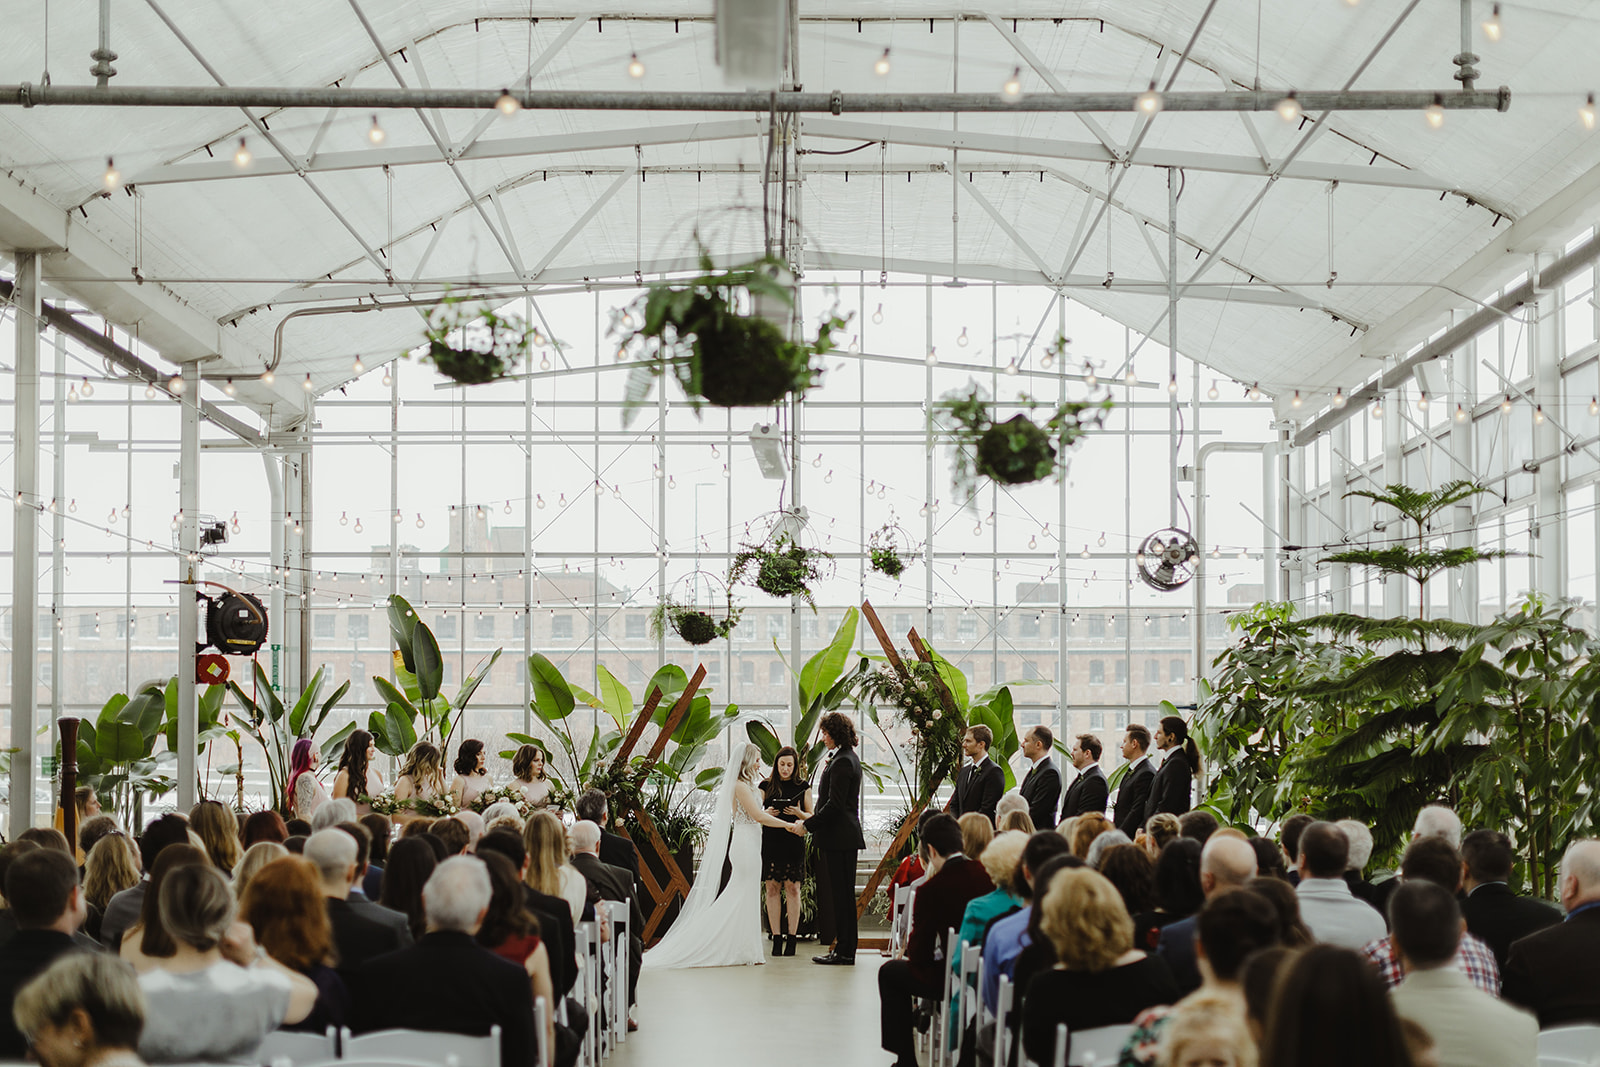 A wedding ceremony at the Grand Rapids Downtown Market